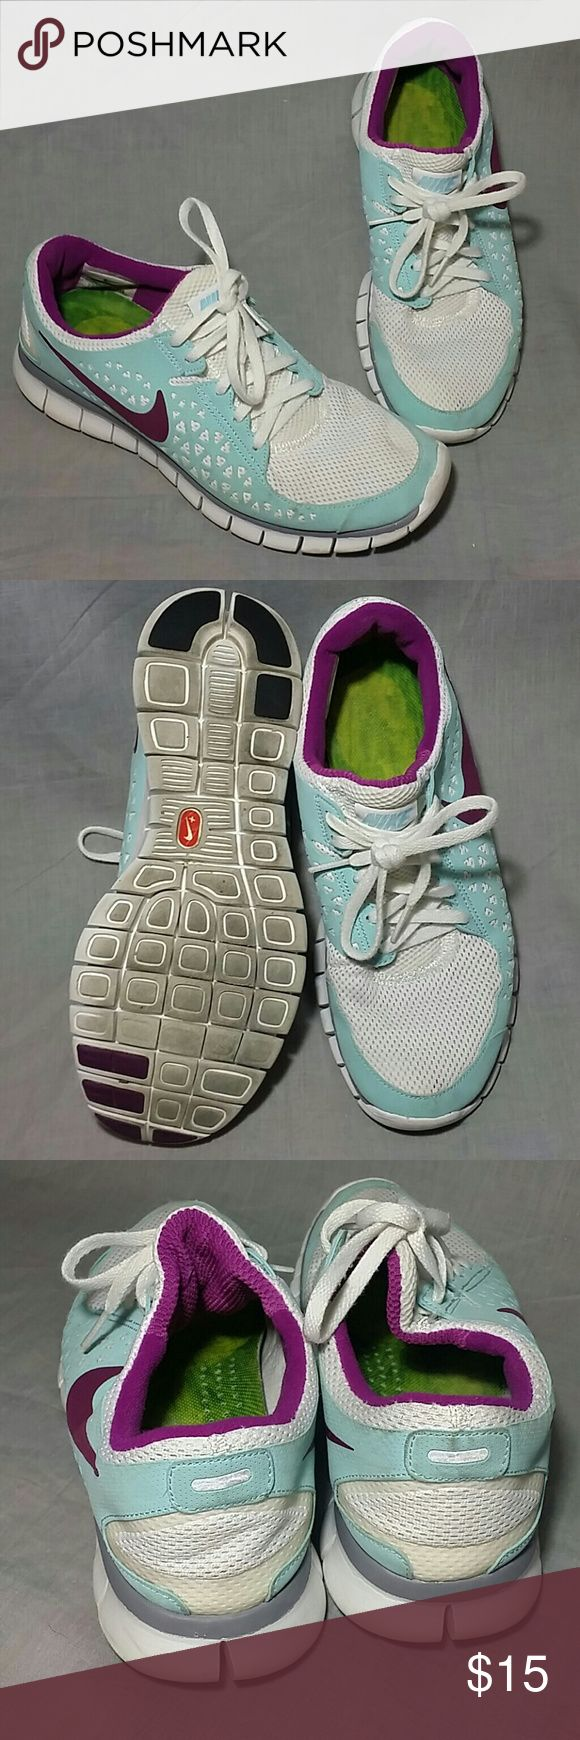 Women's NIKE Shoes Size 9.5 M Slip-on Lace ups Item has a sign of being used, white light blue. Nike Shoes Sneakers